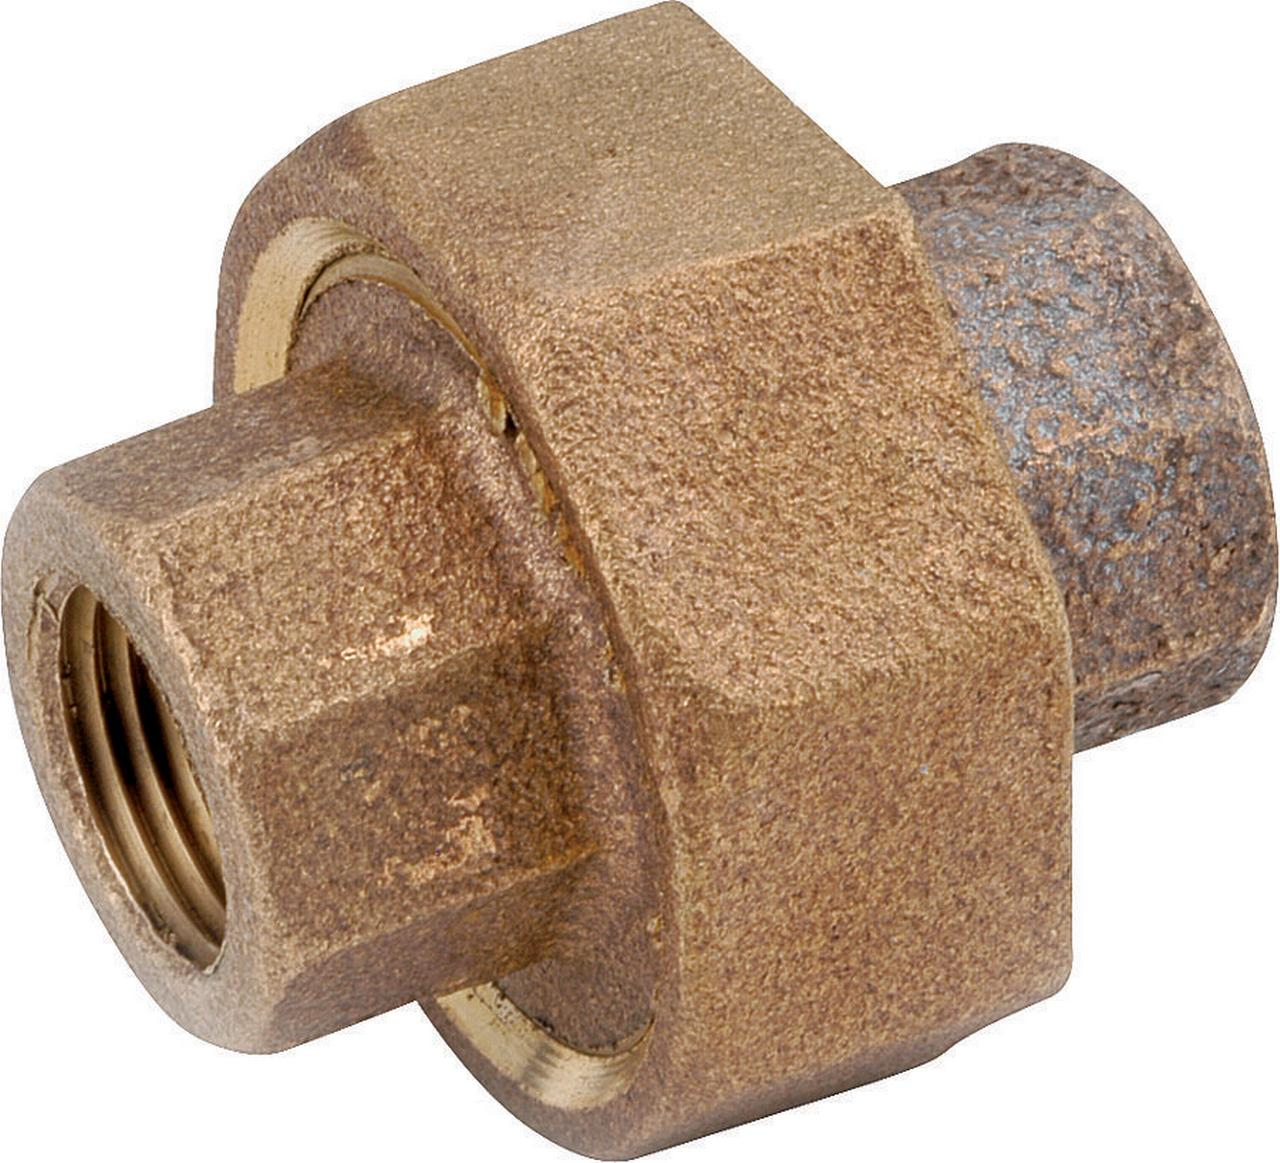 Anderson 738104-20 Pipe Union, 1-1/4 in, FPT, Brass